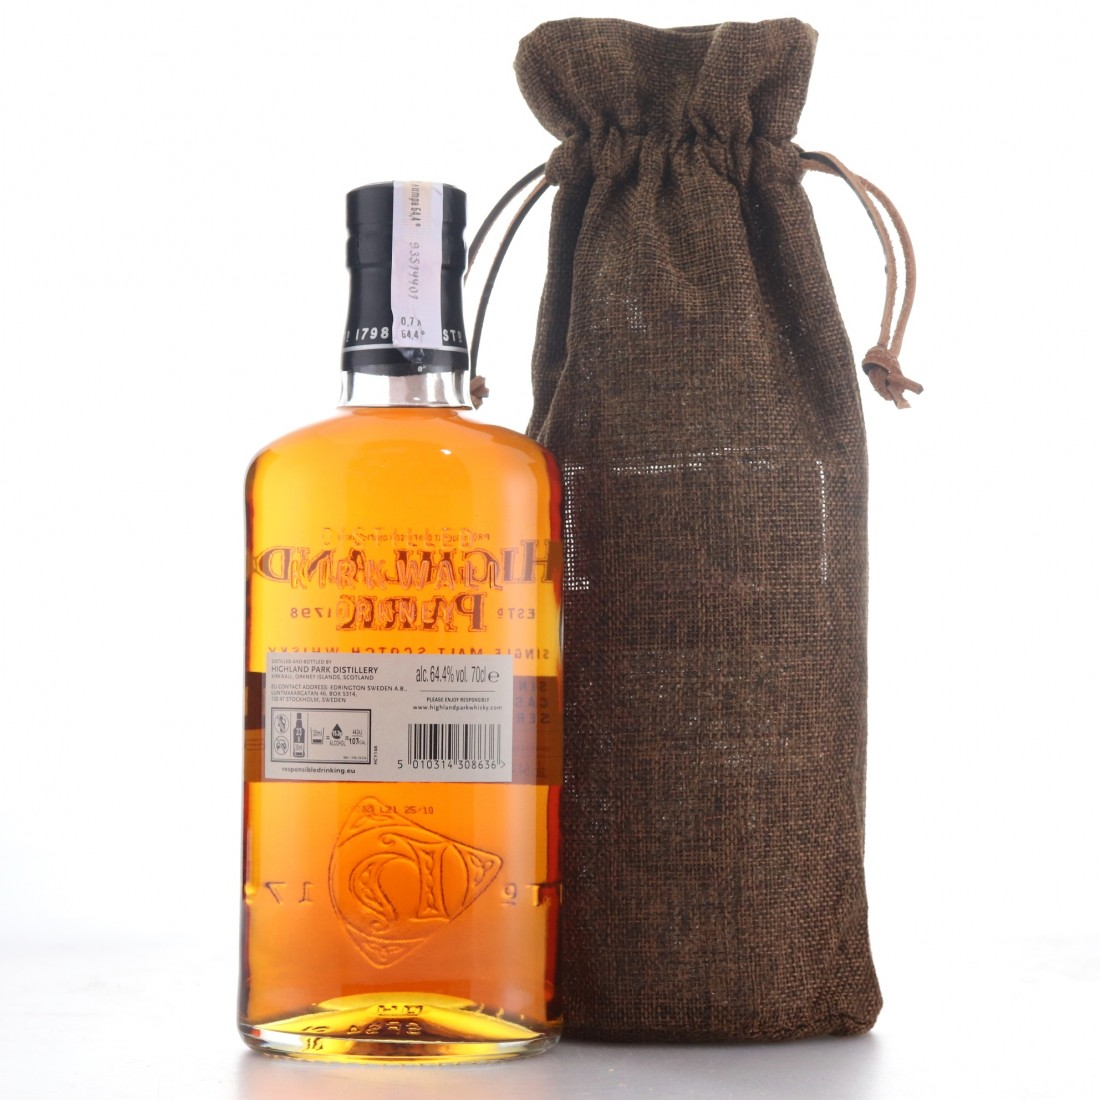 Highland Park 2006 Single Cask 12 Year Old #1642 / Bulgaria 811